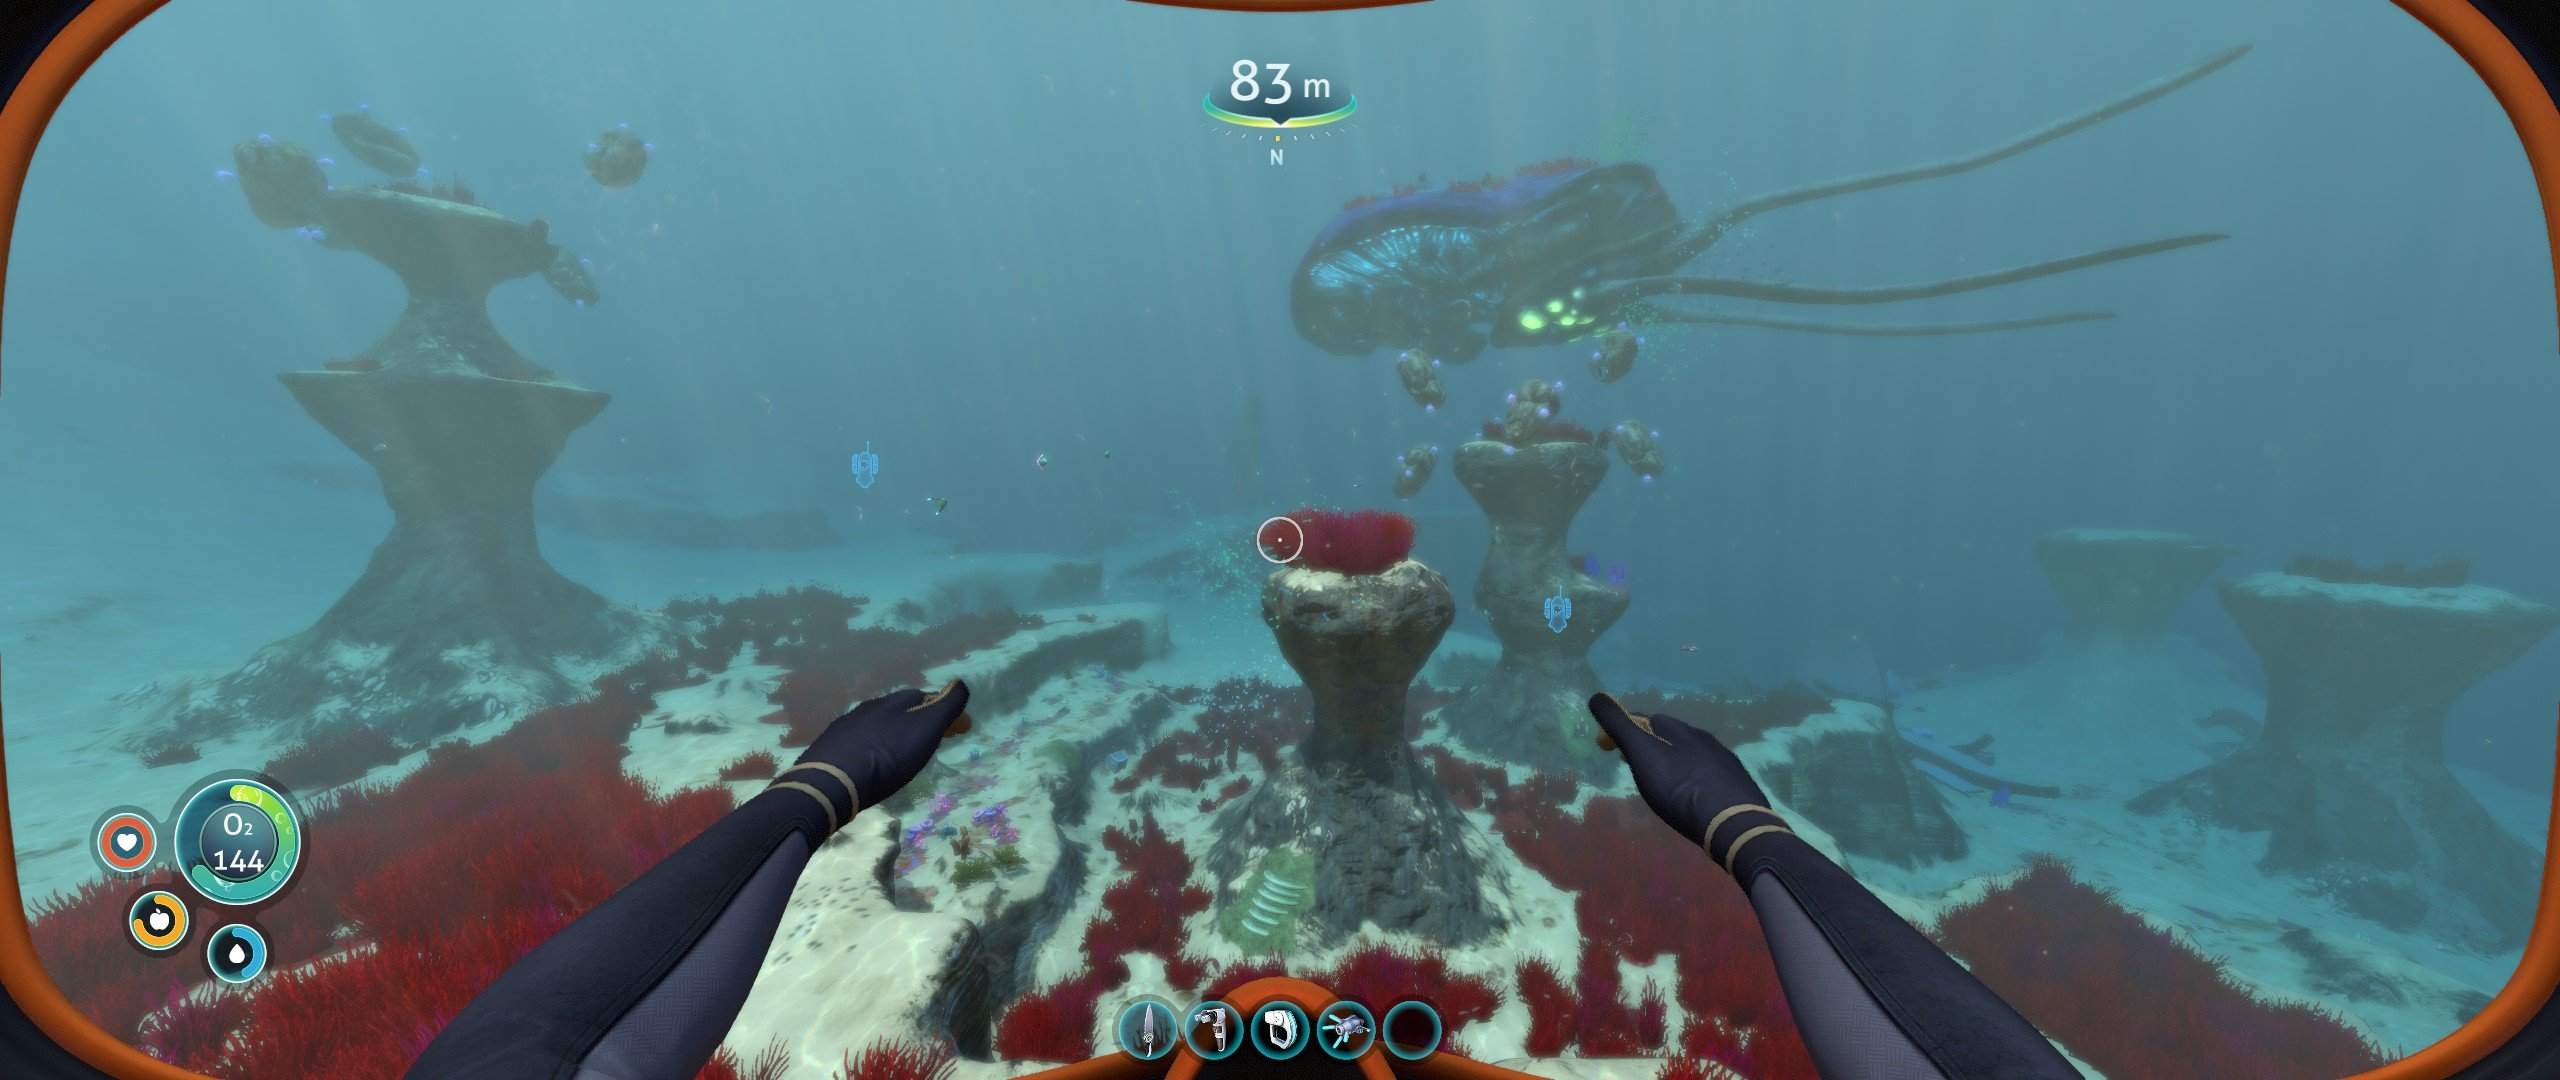 Shacknews Best PC Game 2018 Subnautica underwater